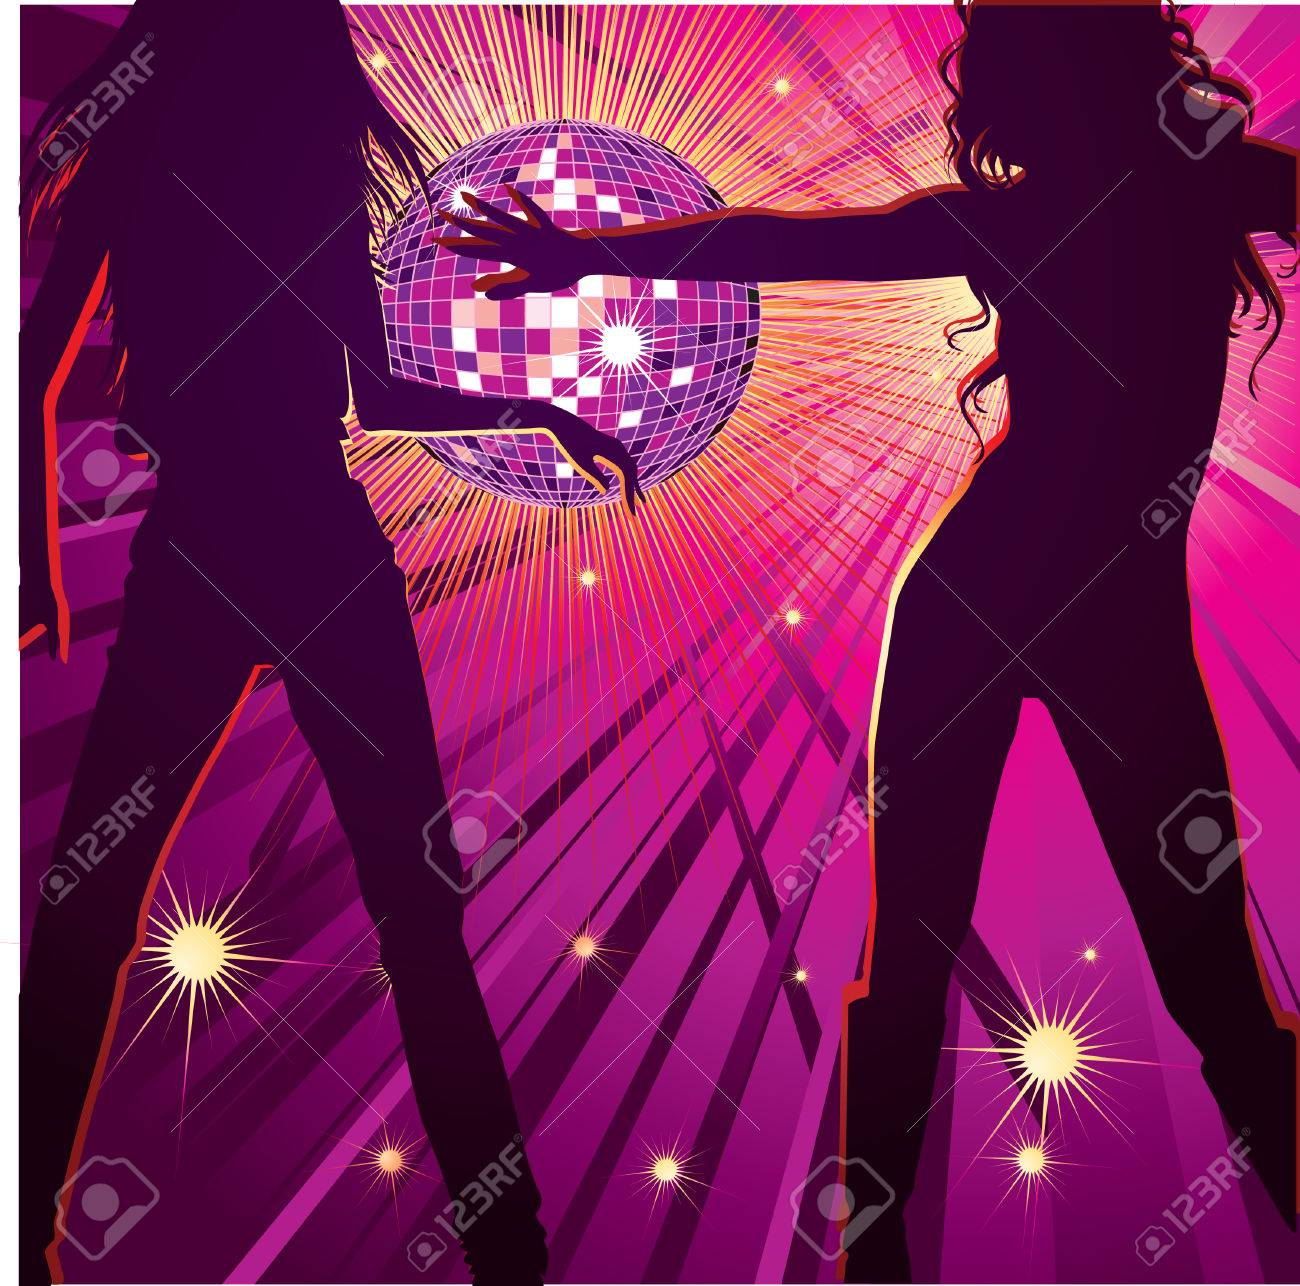 Background With Two Girls Dancing In Night Club Disco Ball And Royalty Free Cliparts Vectors And Stock Illustration Image 7315802